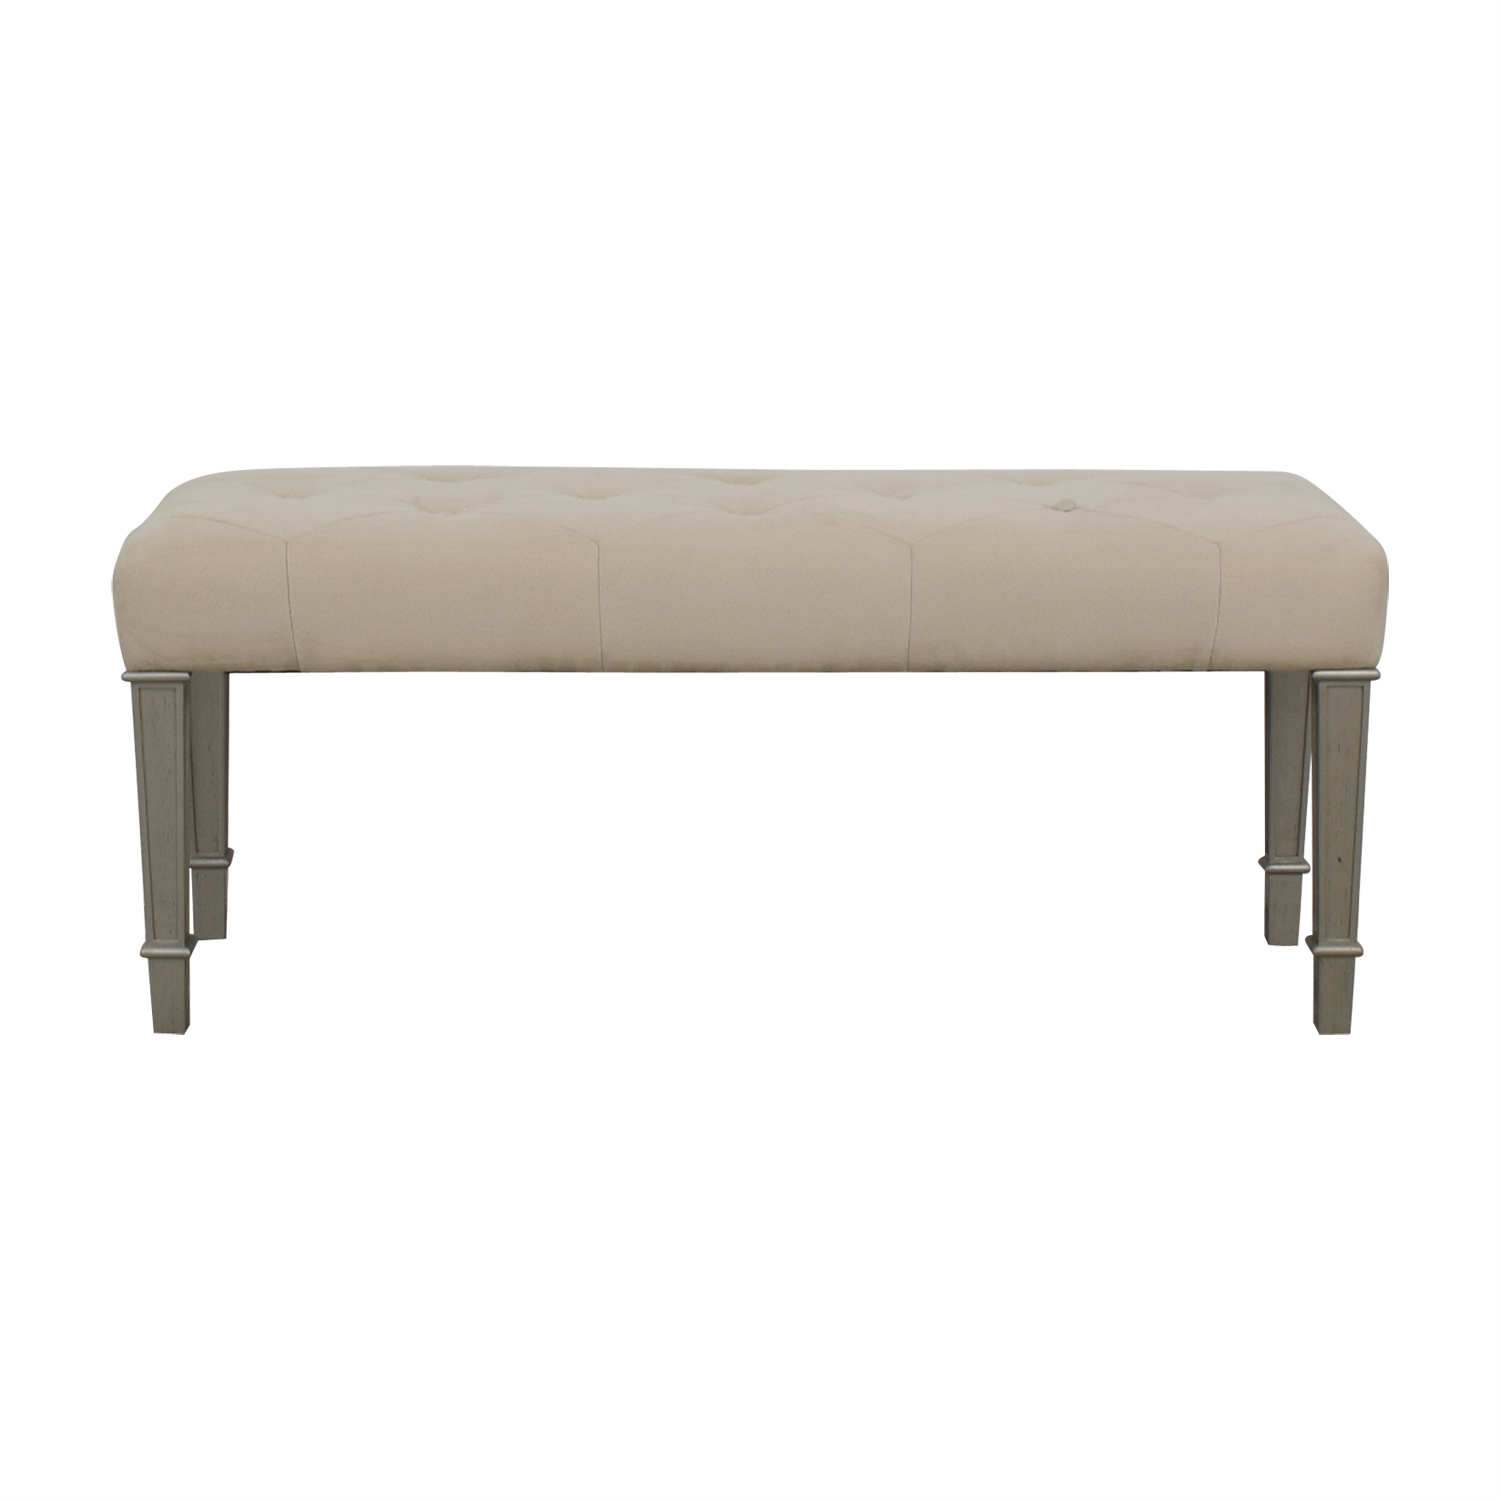 Pier One Horchow Hayworth Ivory Silver Bench used